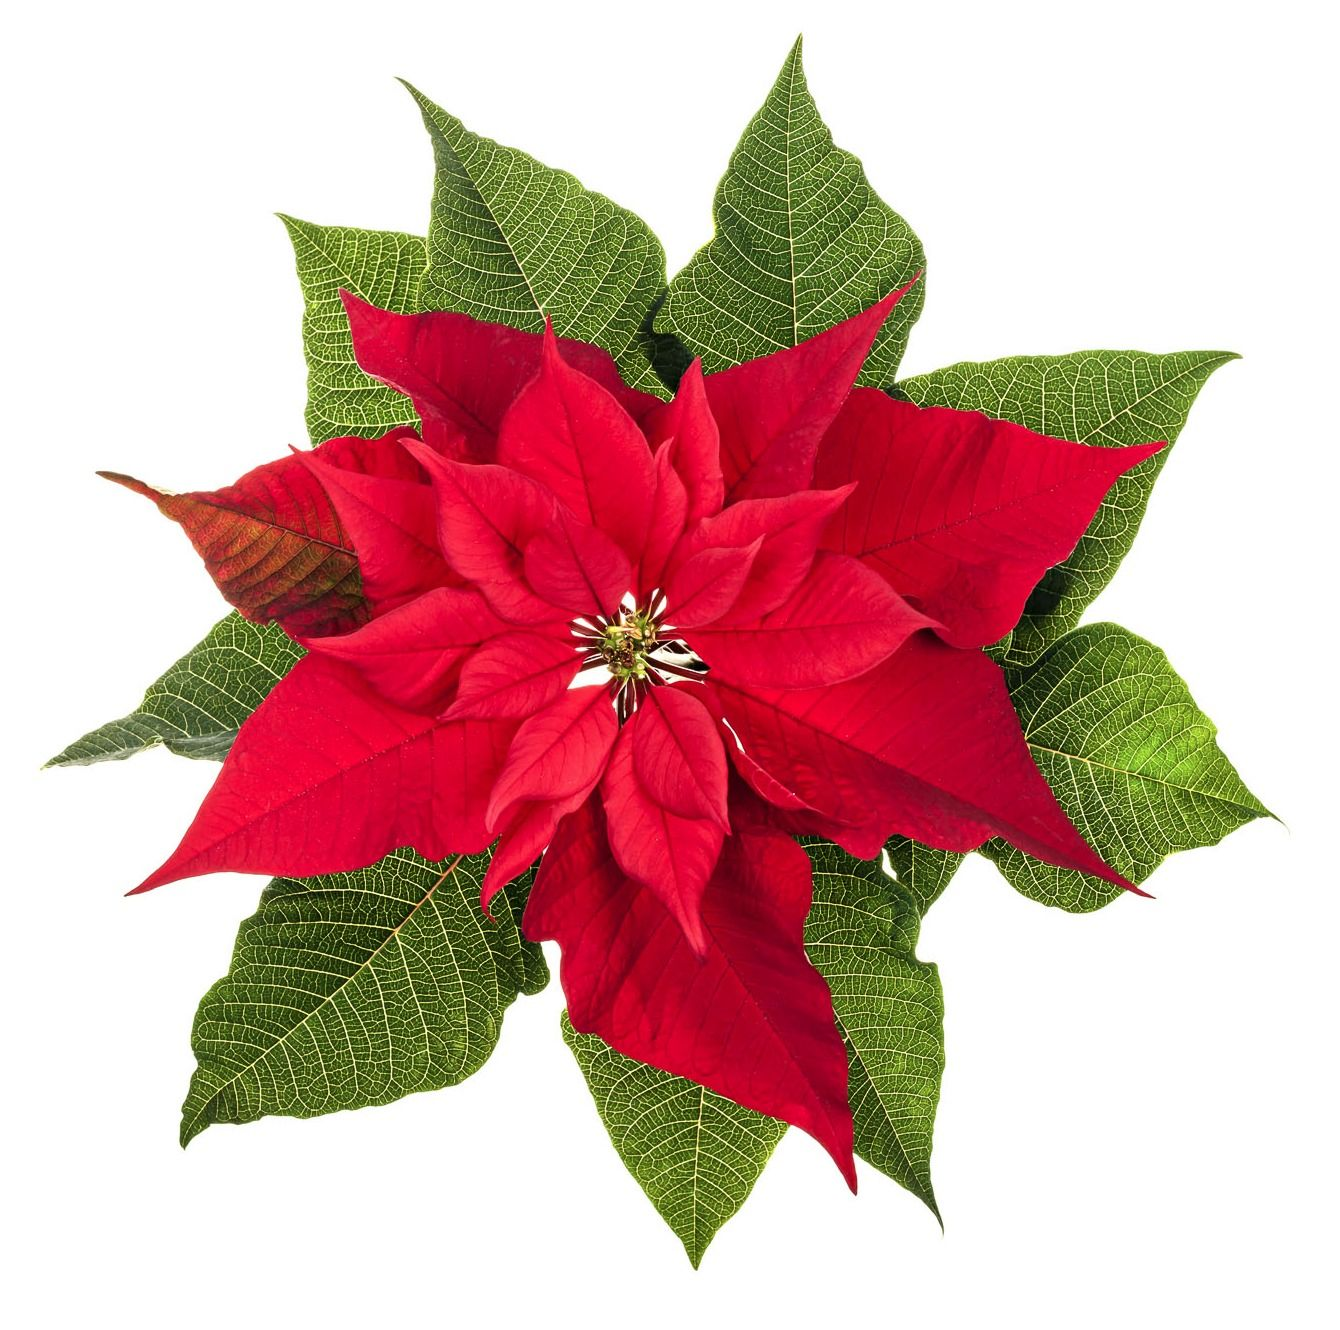 Wedding Flowers Poinsettia Birthday Month December Colors Red White Pink Maroon Salmon Season Decem Geburt Blumen Weihnachtsstern Blumentapete